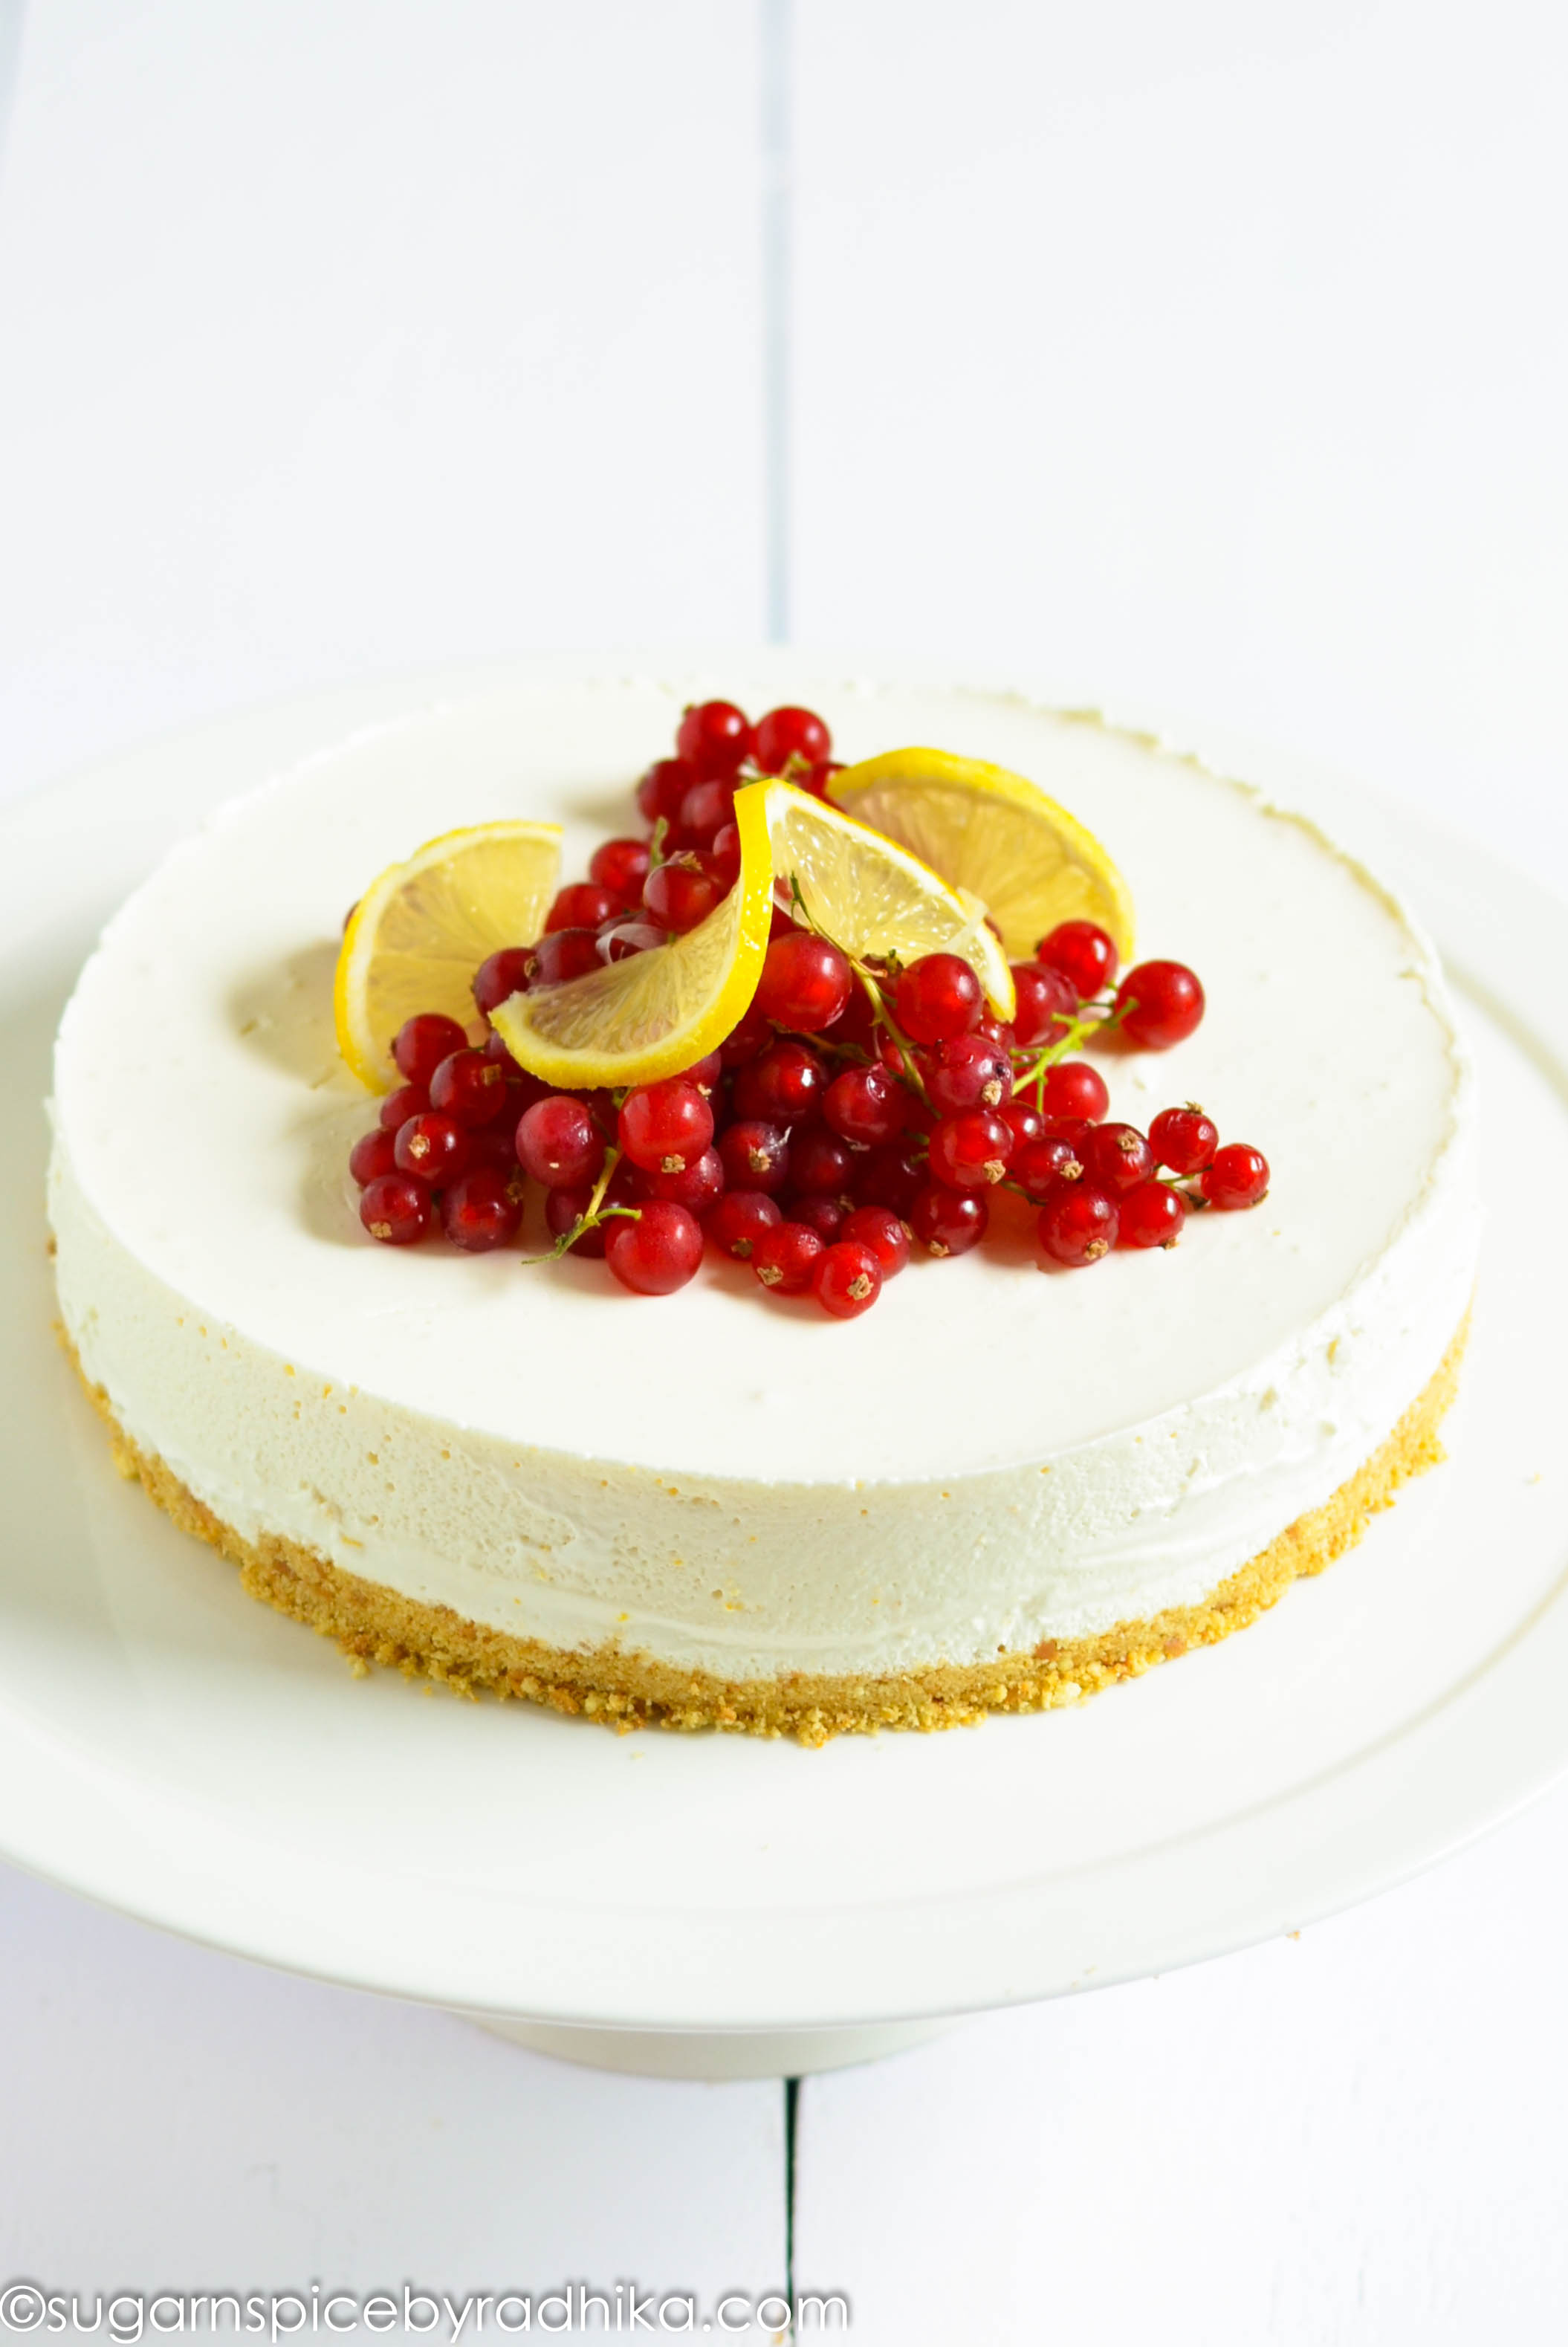 NoBake Lemon Cheesecake